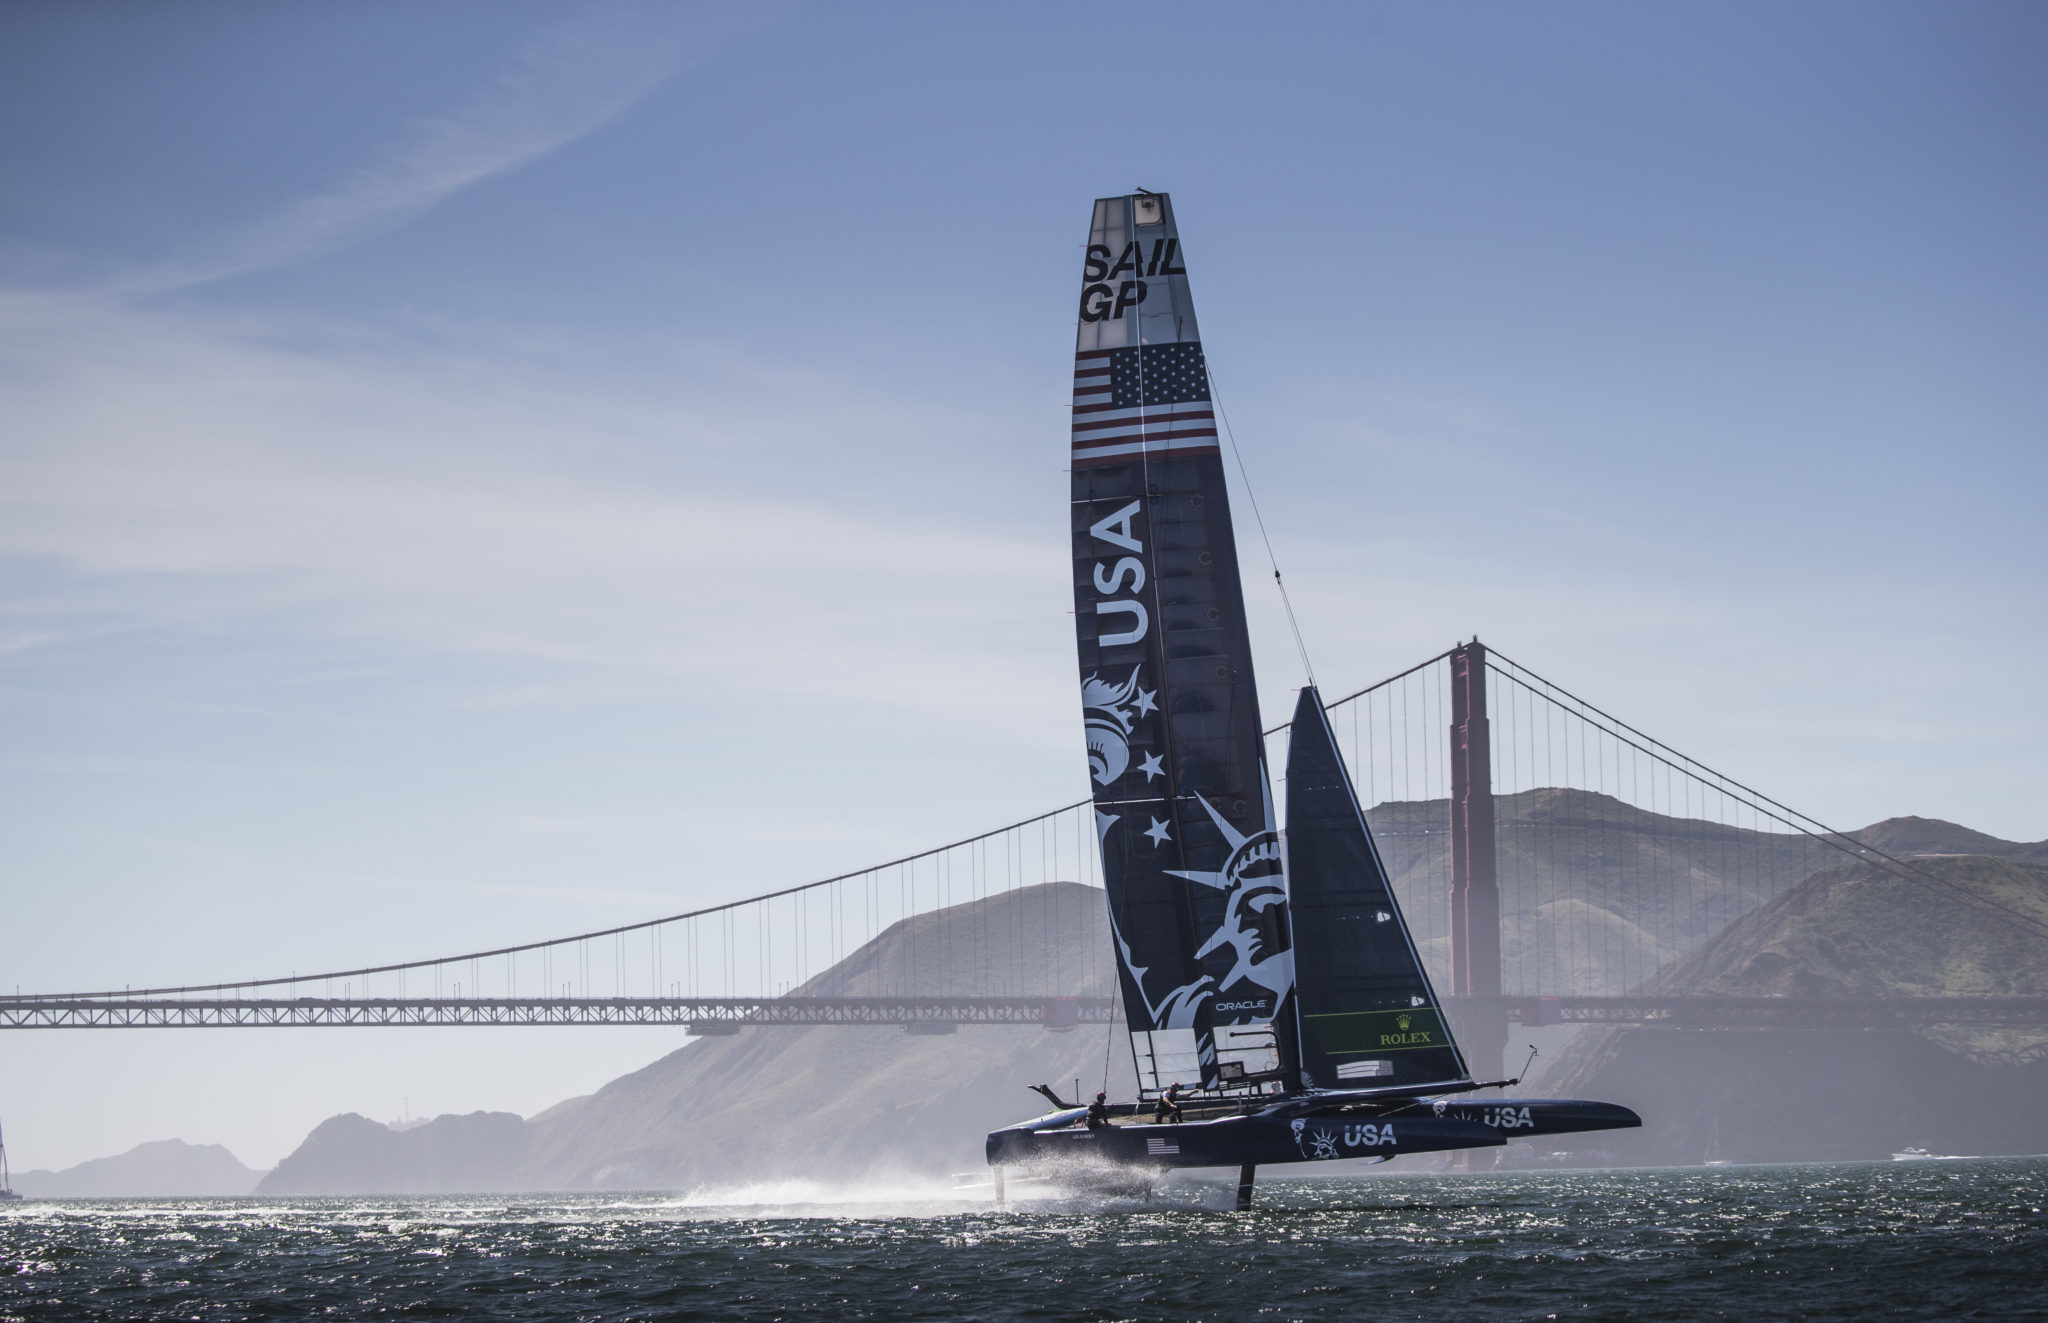 he United States SailGP team in action on their second day of practice Race 2 Season 1 SailGP event in San Francisco, California, United States. 23 April 2019. Photo: Lloyd Images for SailGP. (Handout image supplied by SailGP)